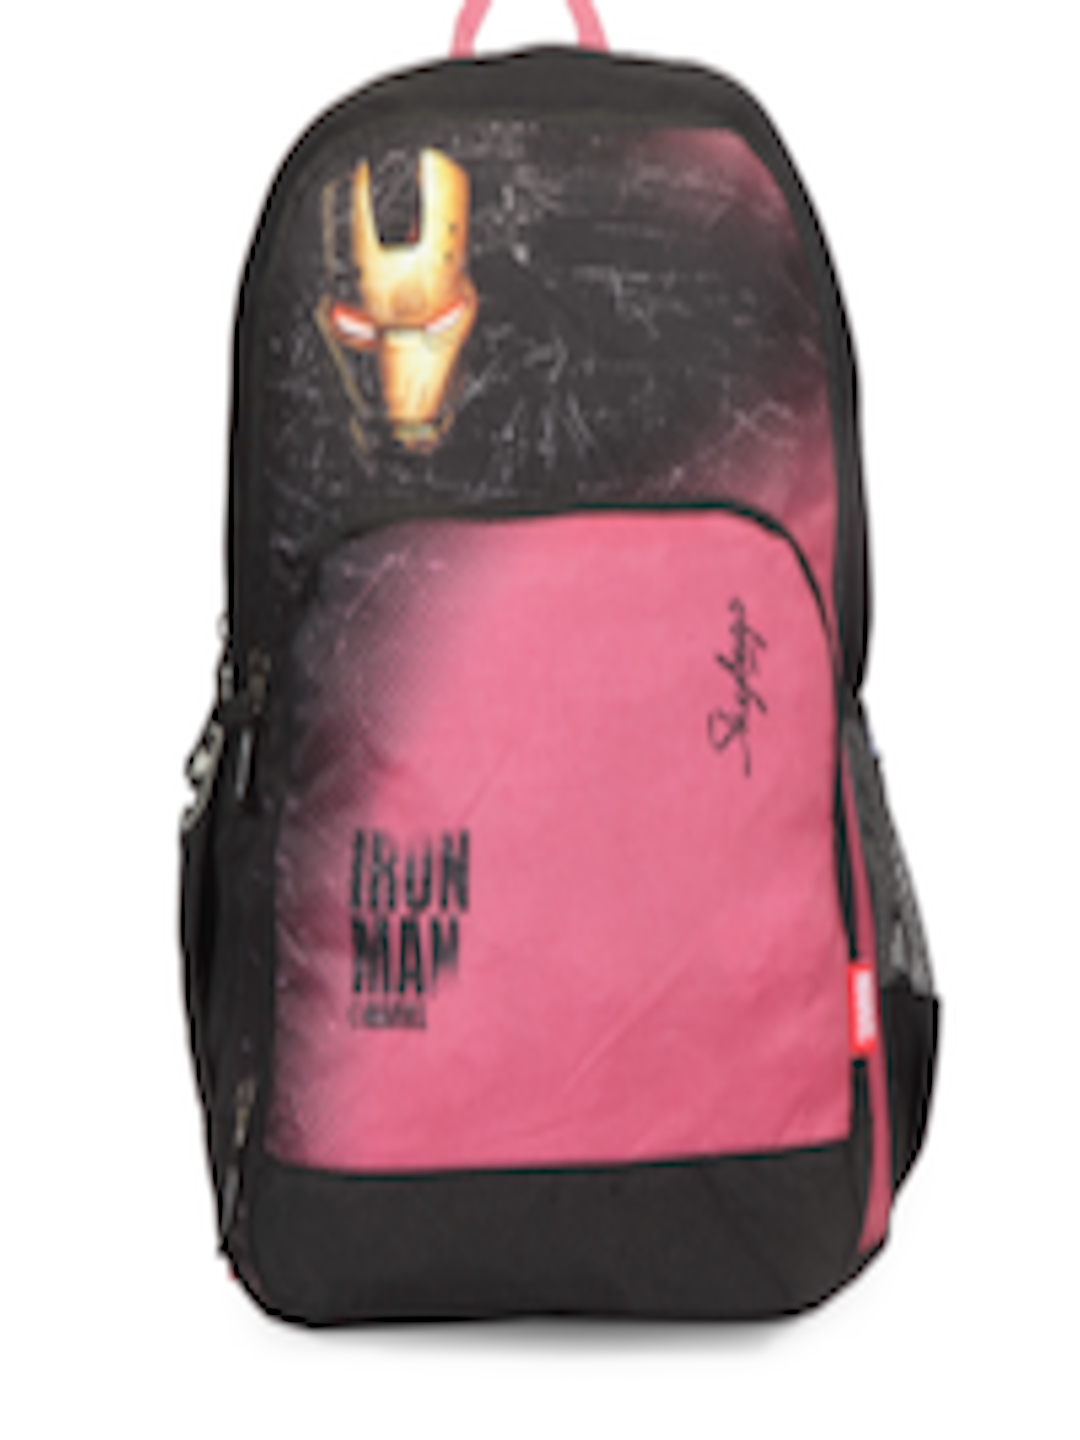 a0658c1c960f Buy Skybags Unisex Black   Pink Graphic Backpack - Backpacks for Unisex  2160838